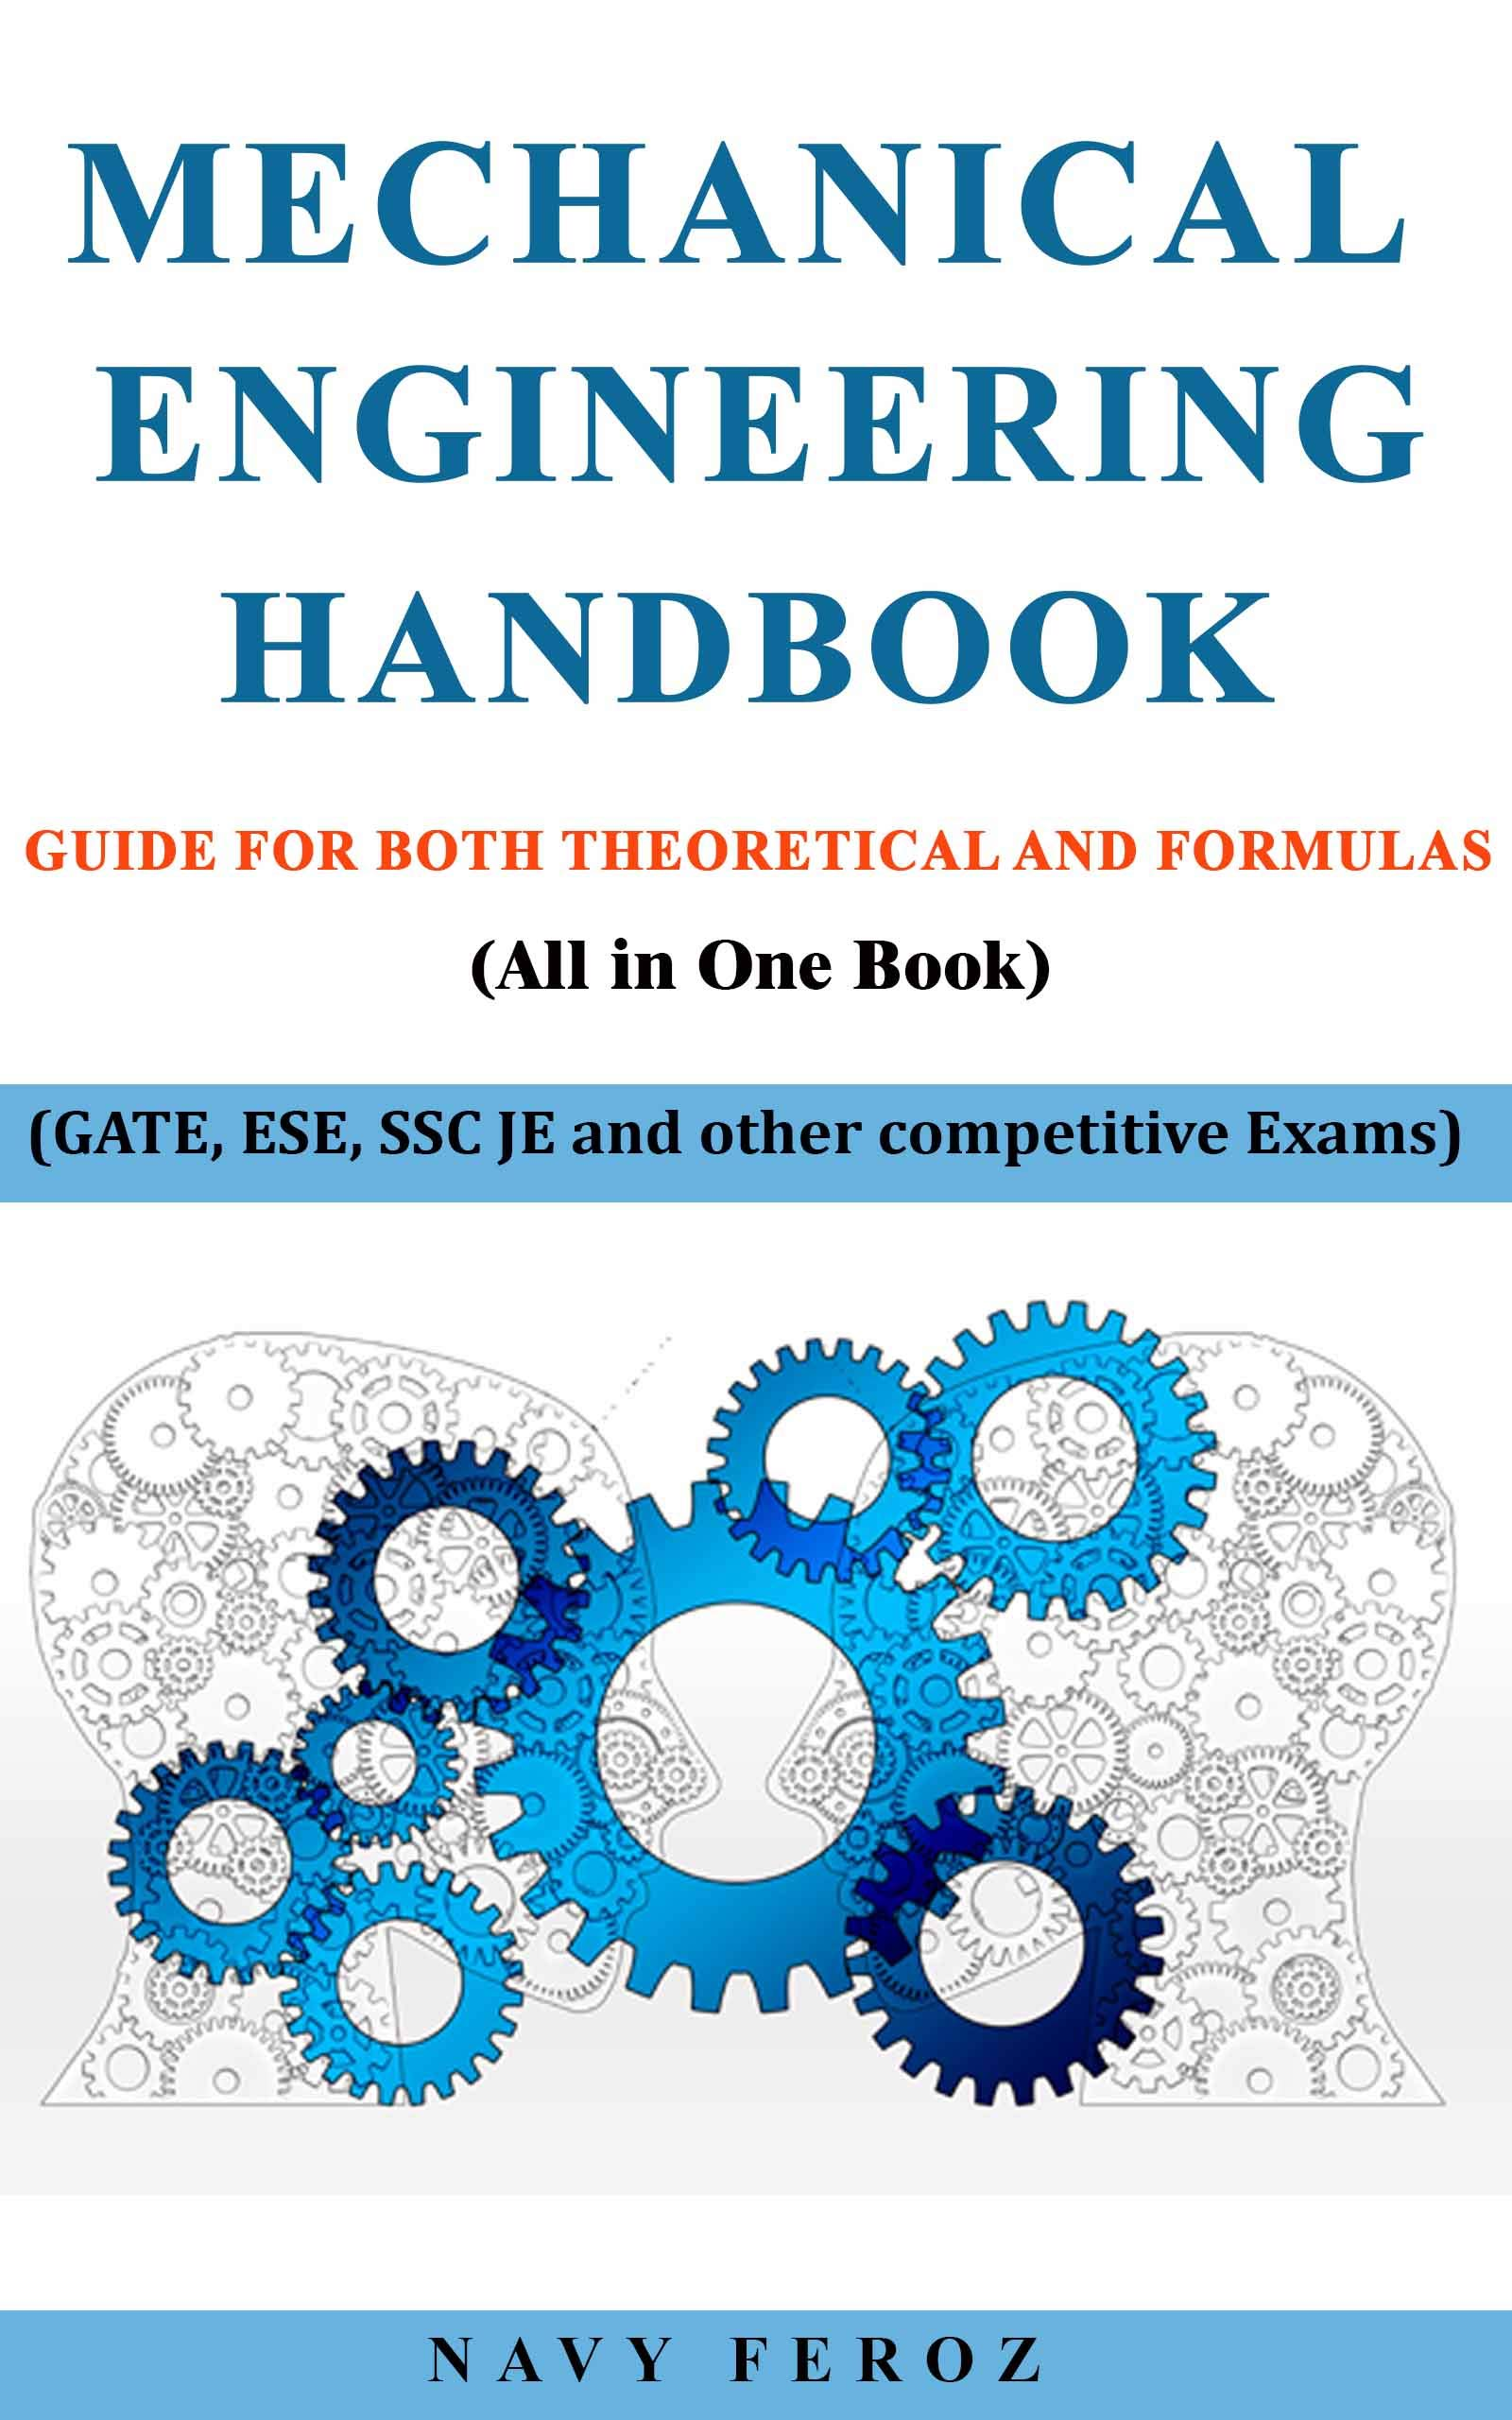 Mechanical Engineering Handbook  Guide For Both Theoretical And Formulas  GATE ESE SSC JE And Other Competitive Exams   English Edition